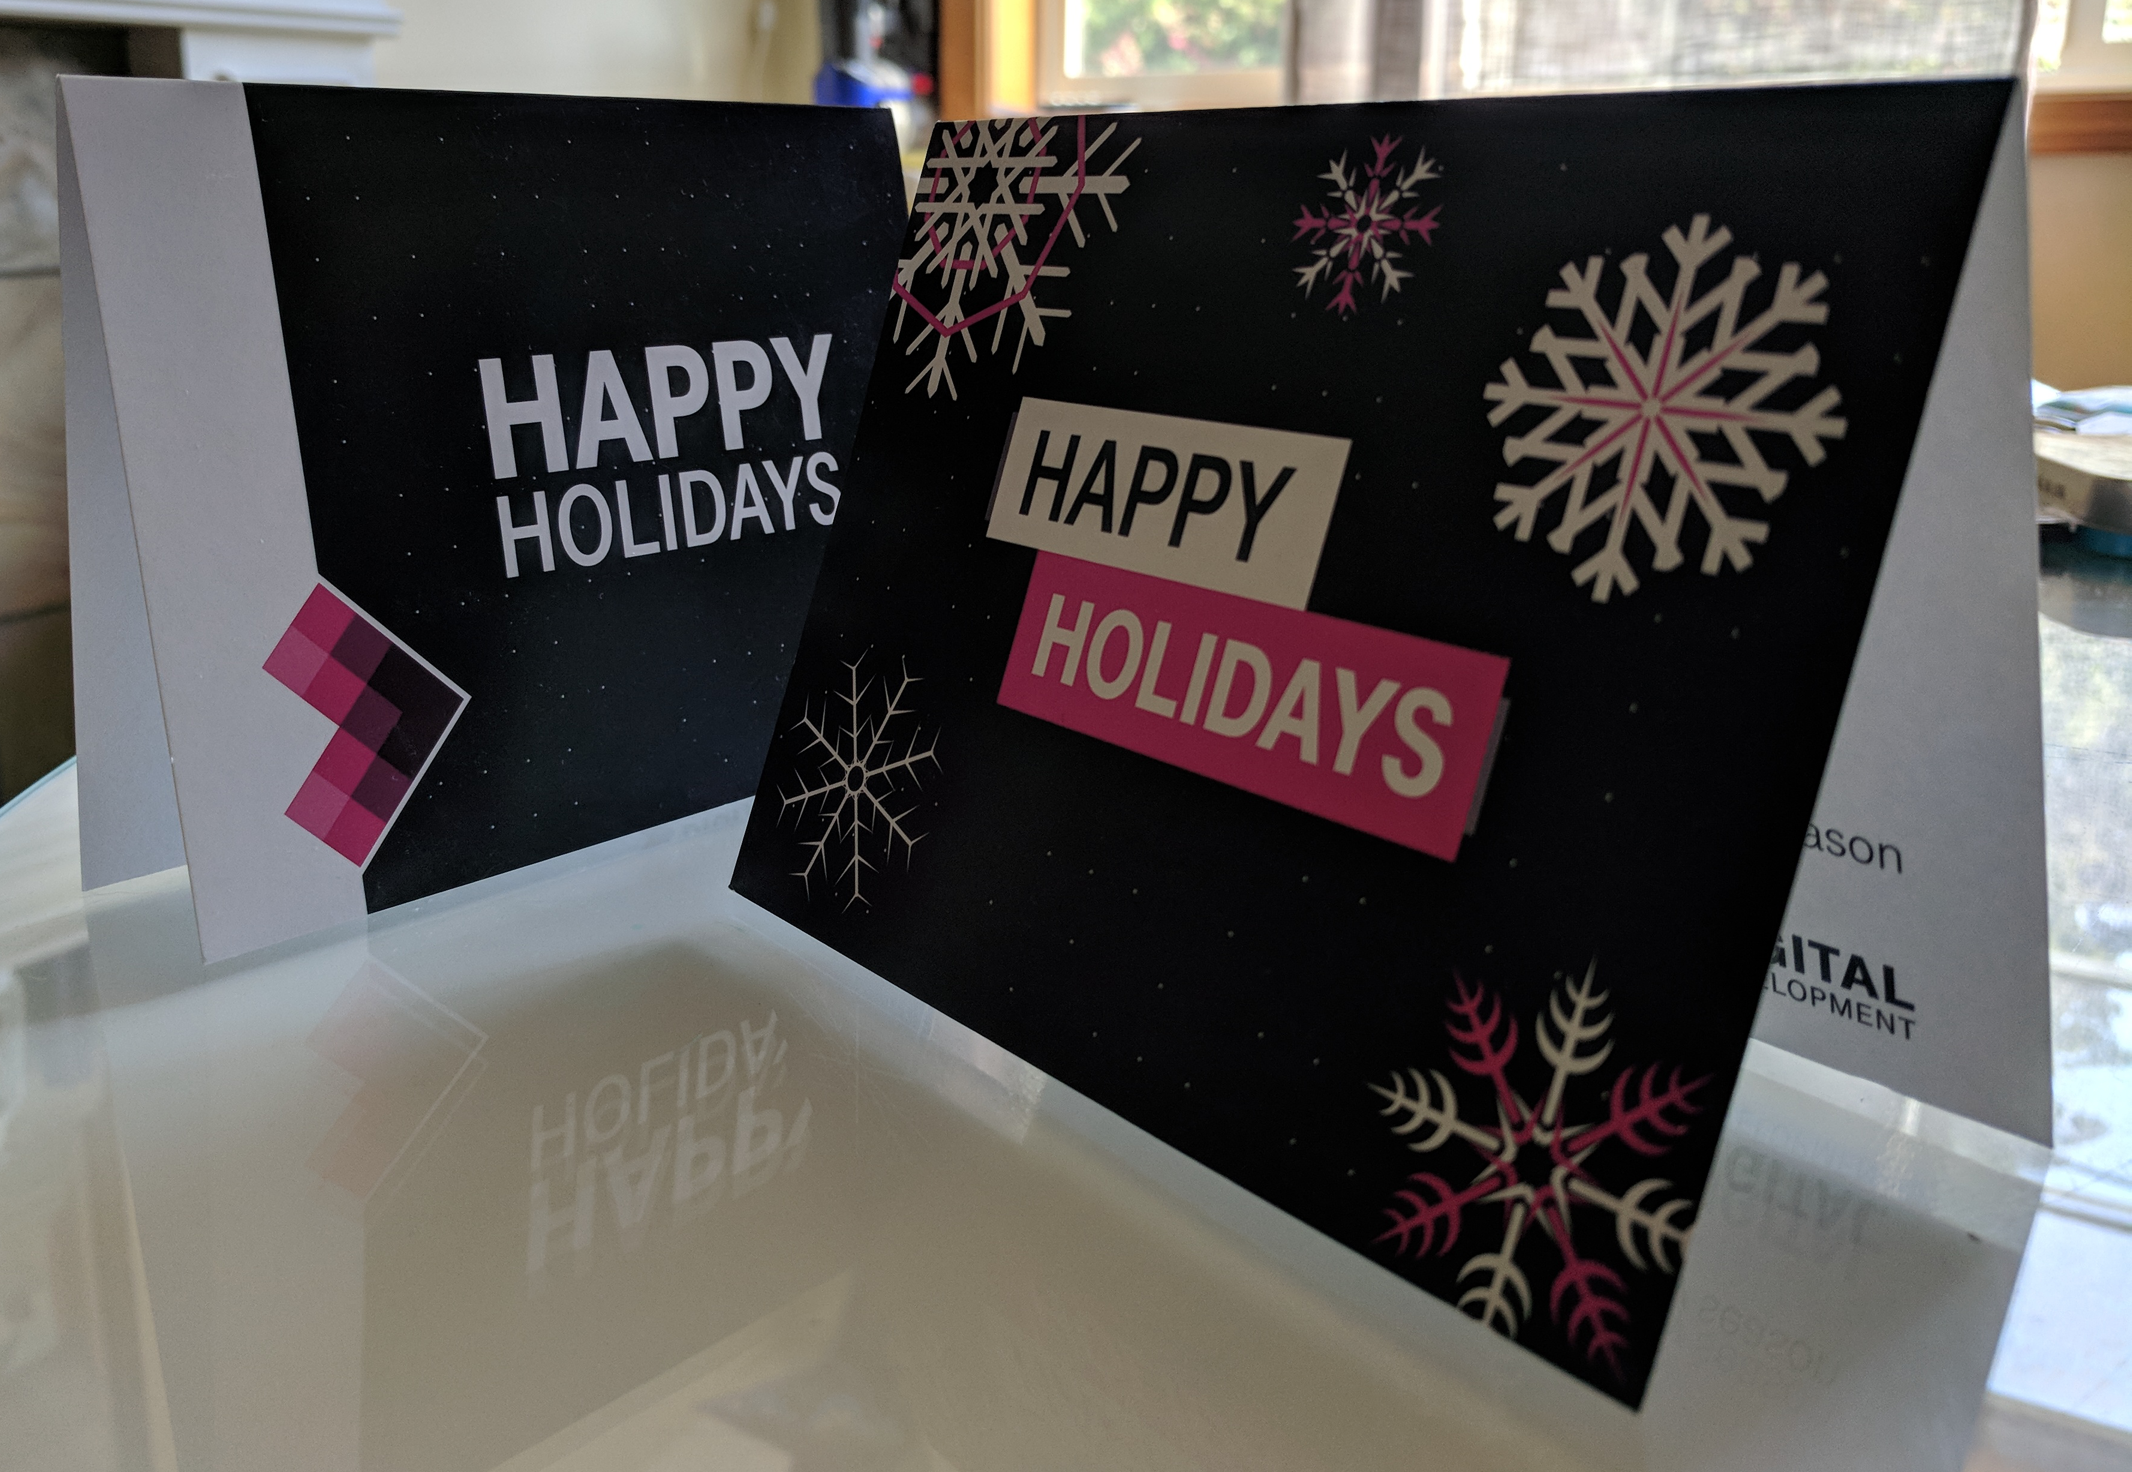 Cards were printed to 5'x7' standard size.